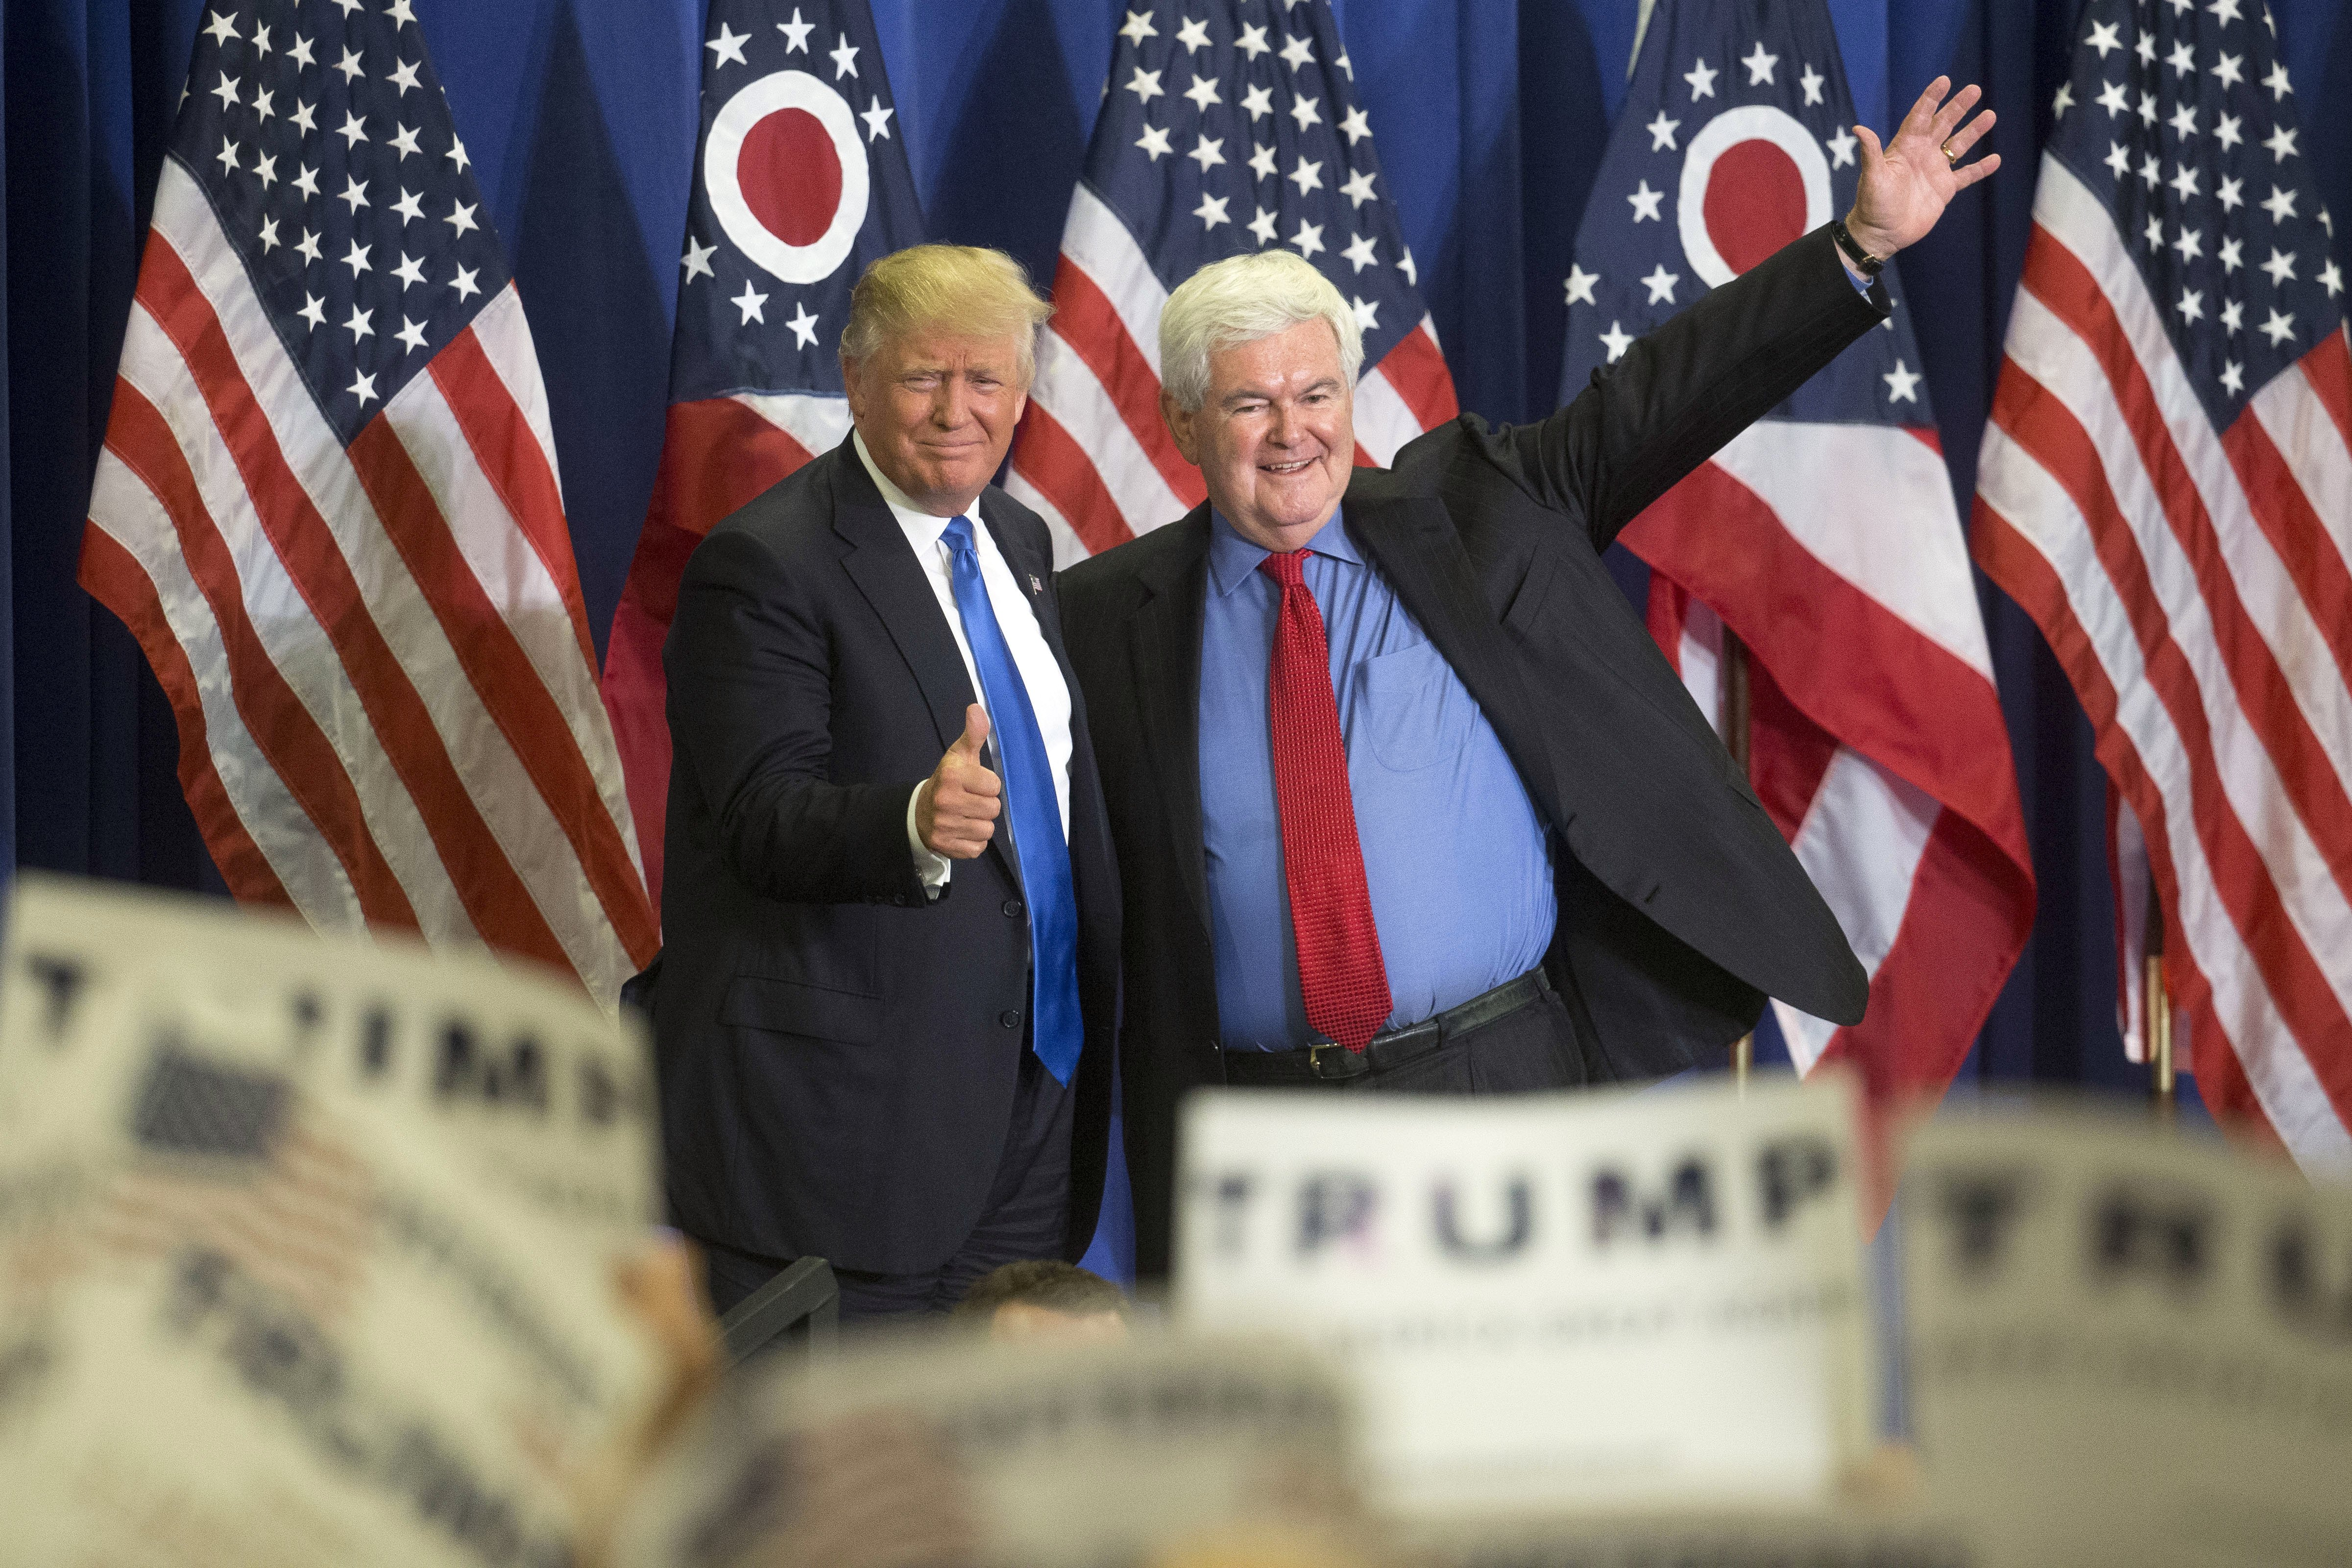 Republican presidential candidate Donald Trump, left, and former House Speaker Newt Gingrich, right, acknowledge the crowd during a campaign rally at the Sharonville Convention Center on July 6, 2016, in Cincinnati.